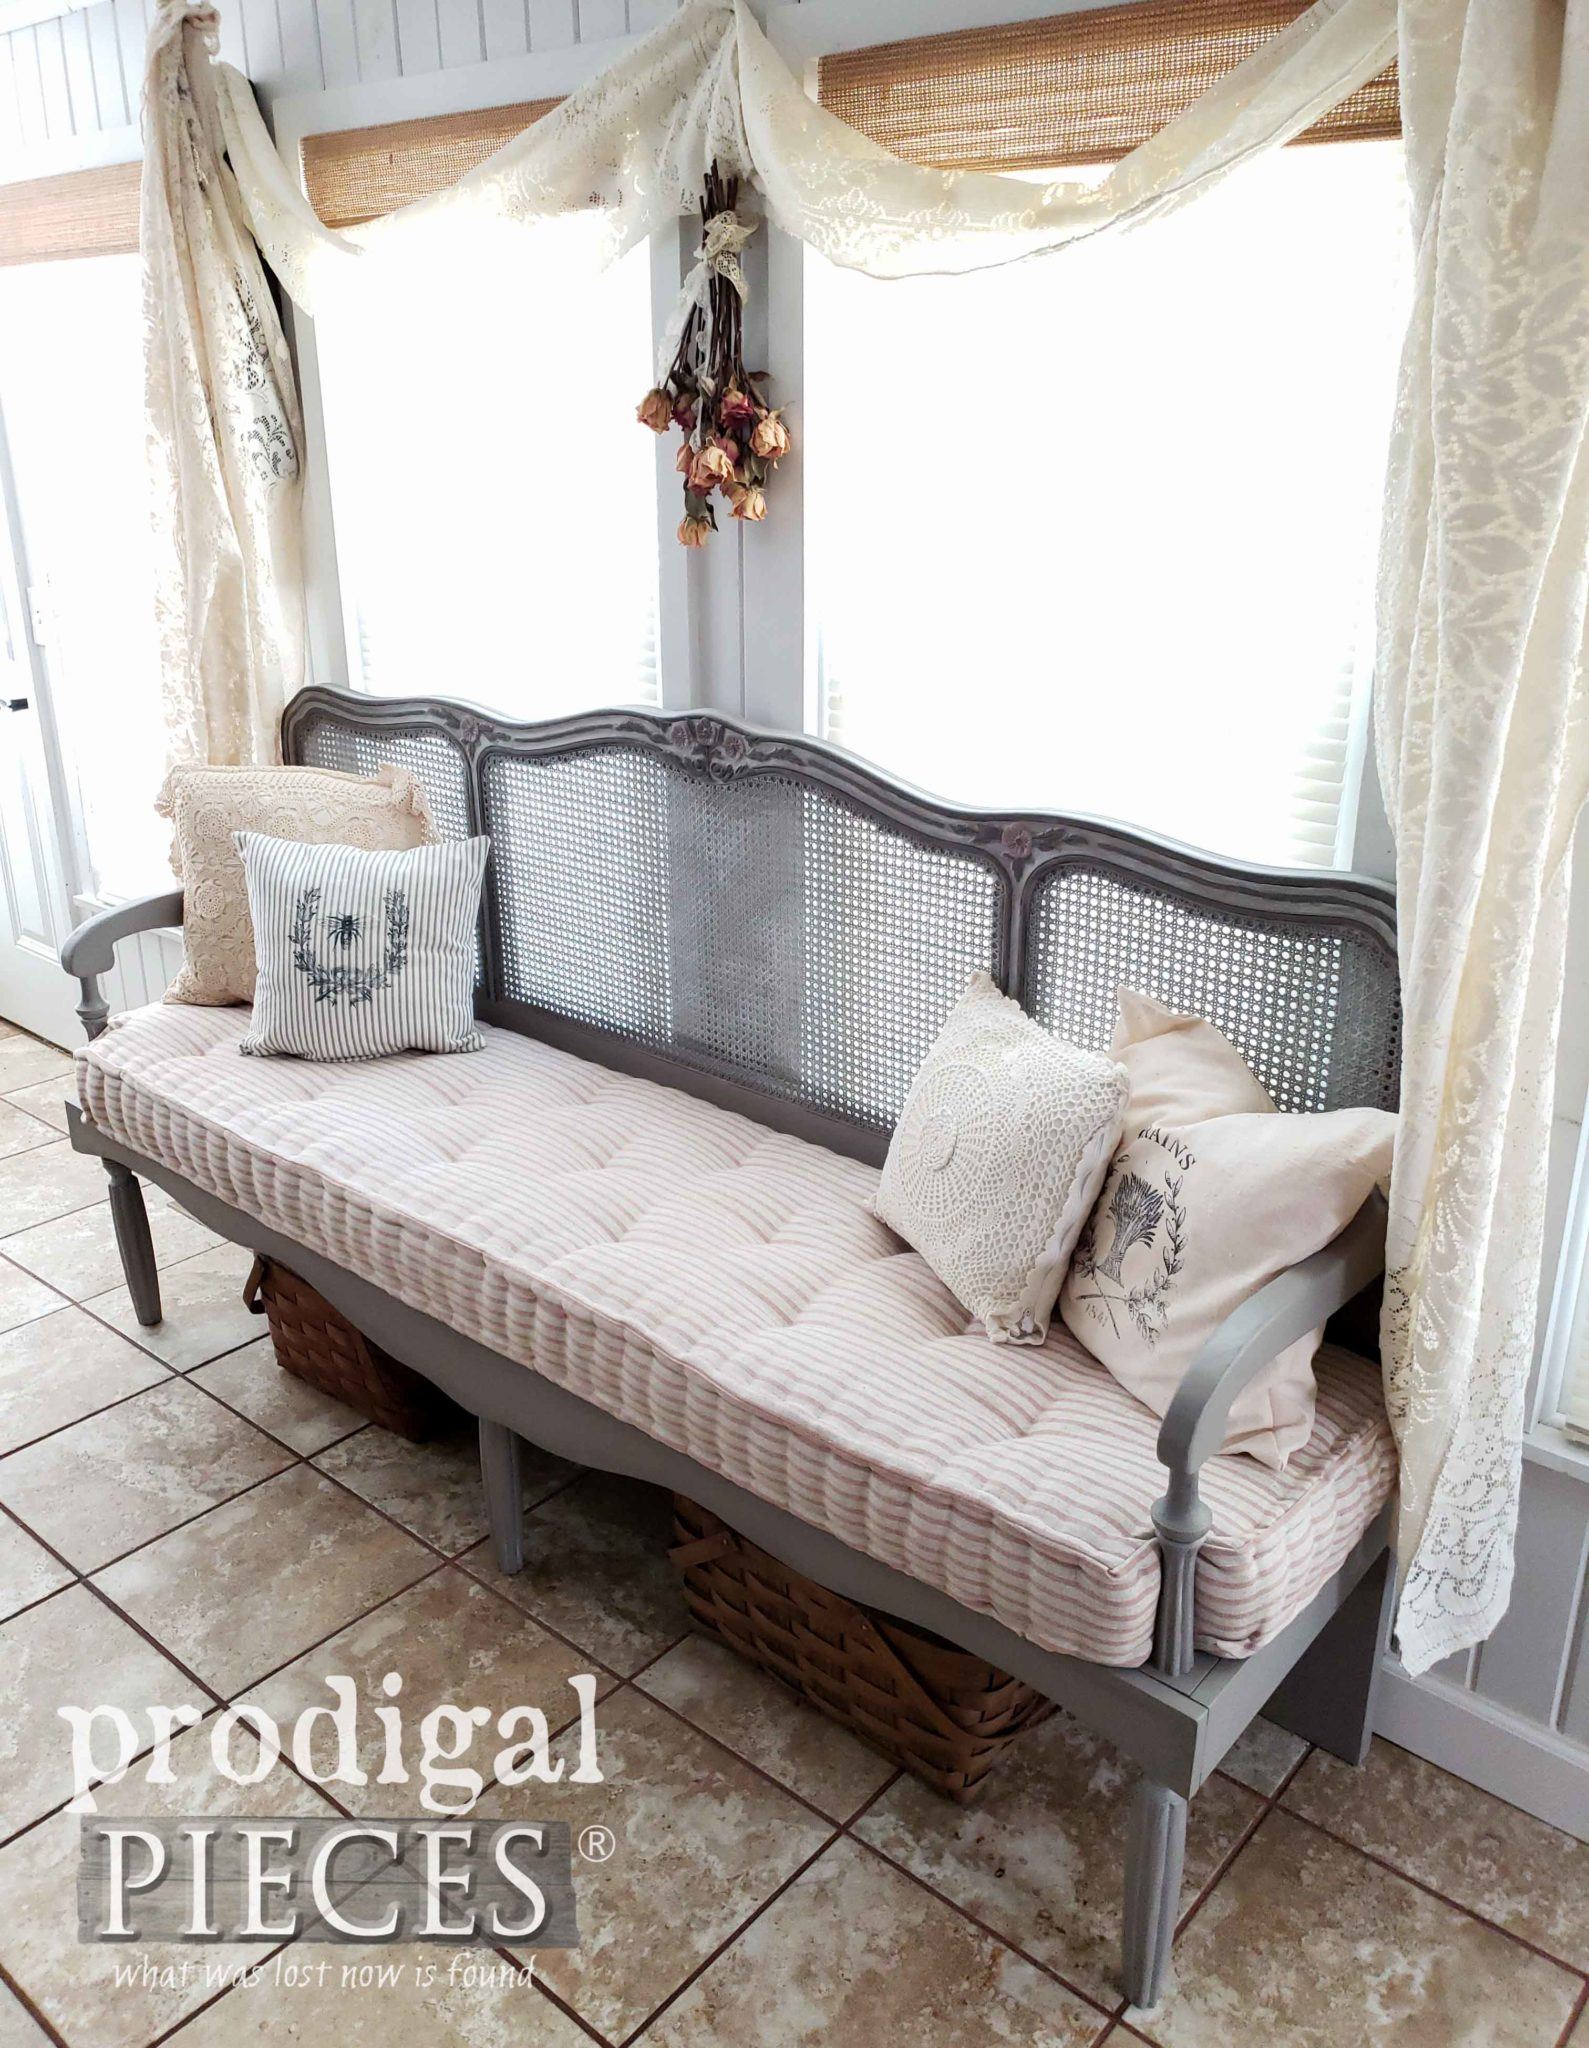 French Provincial Headboard Bench with Mattress Handmade by Larissa of Prodigal Pieces | prodigalpieces.com